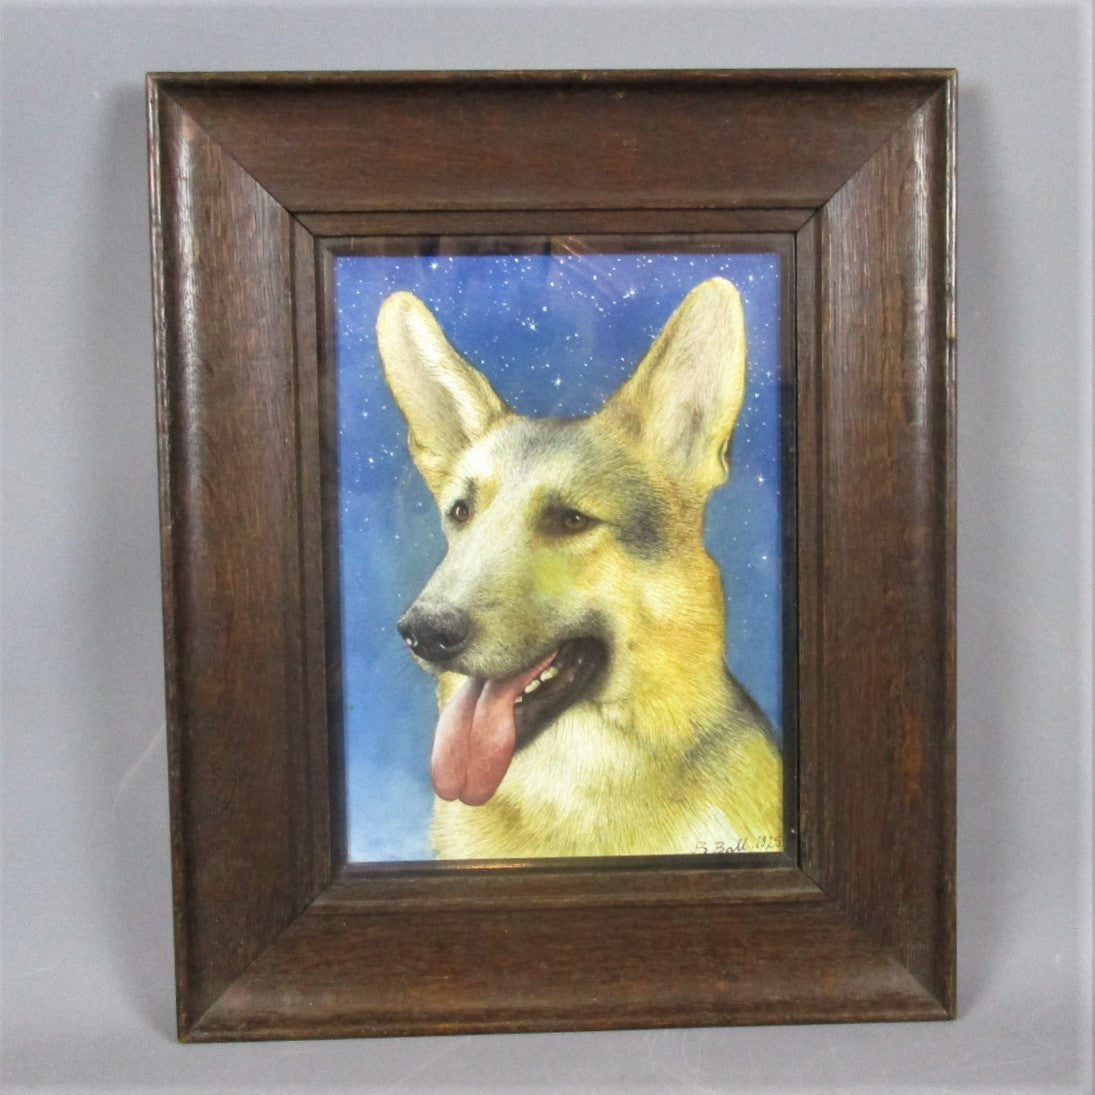 Watercolour Painting of an Alsatian by S Ball Antique c1925